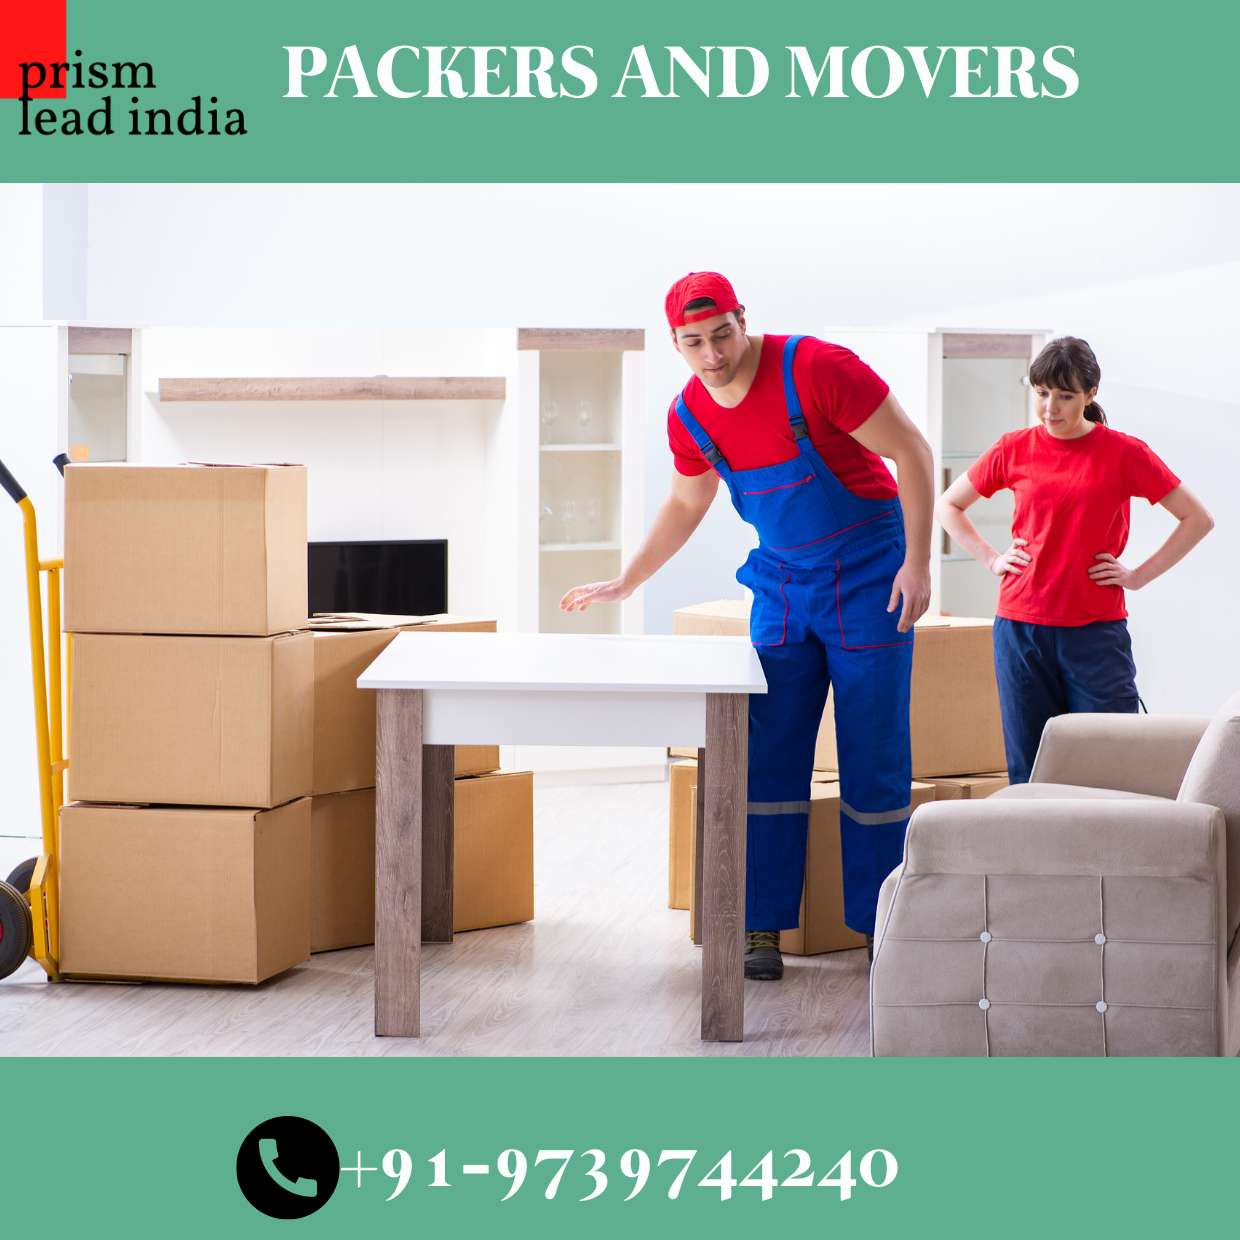 Domestic Packers And Movers Bangalore